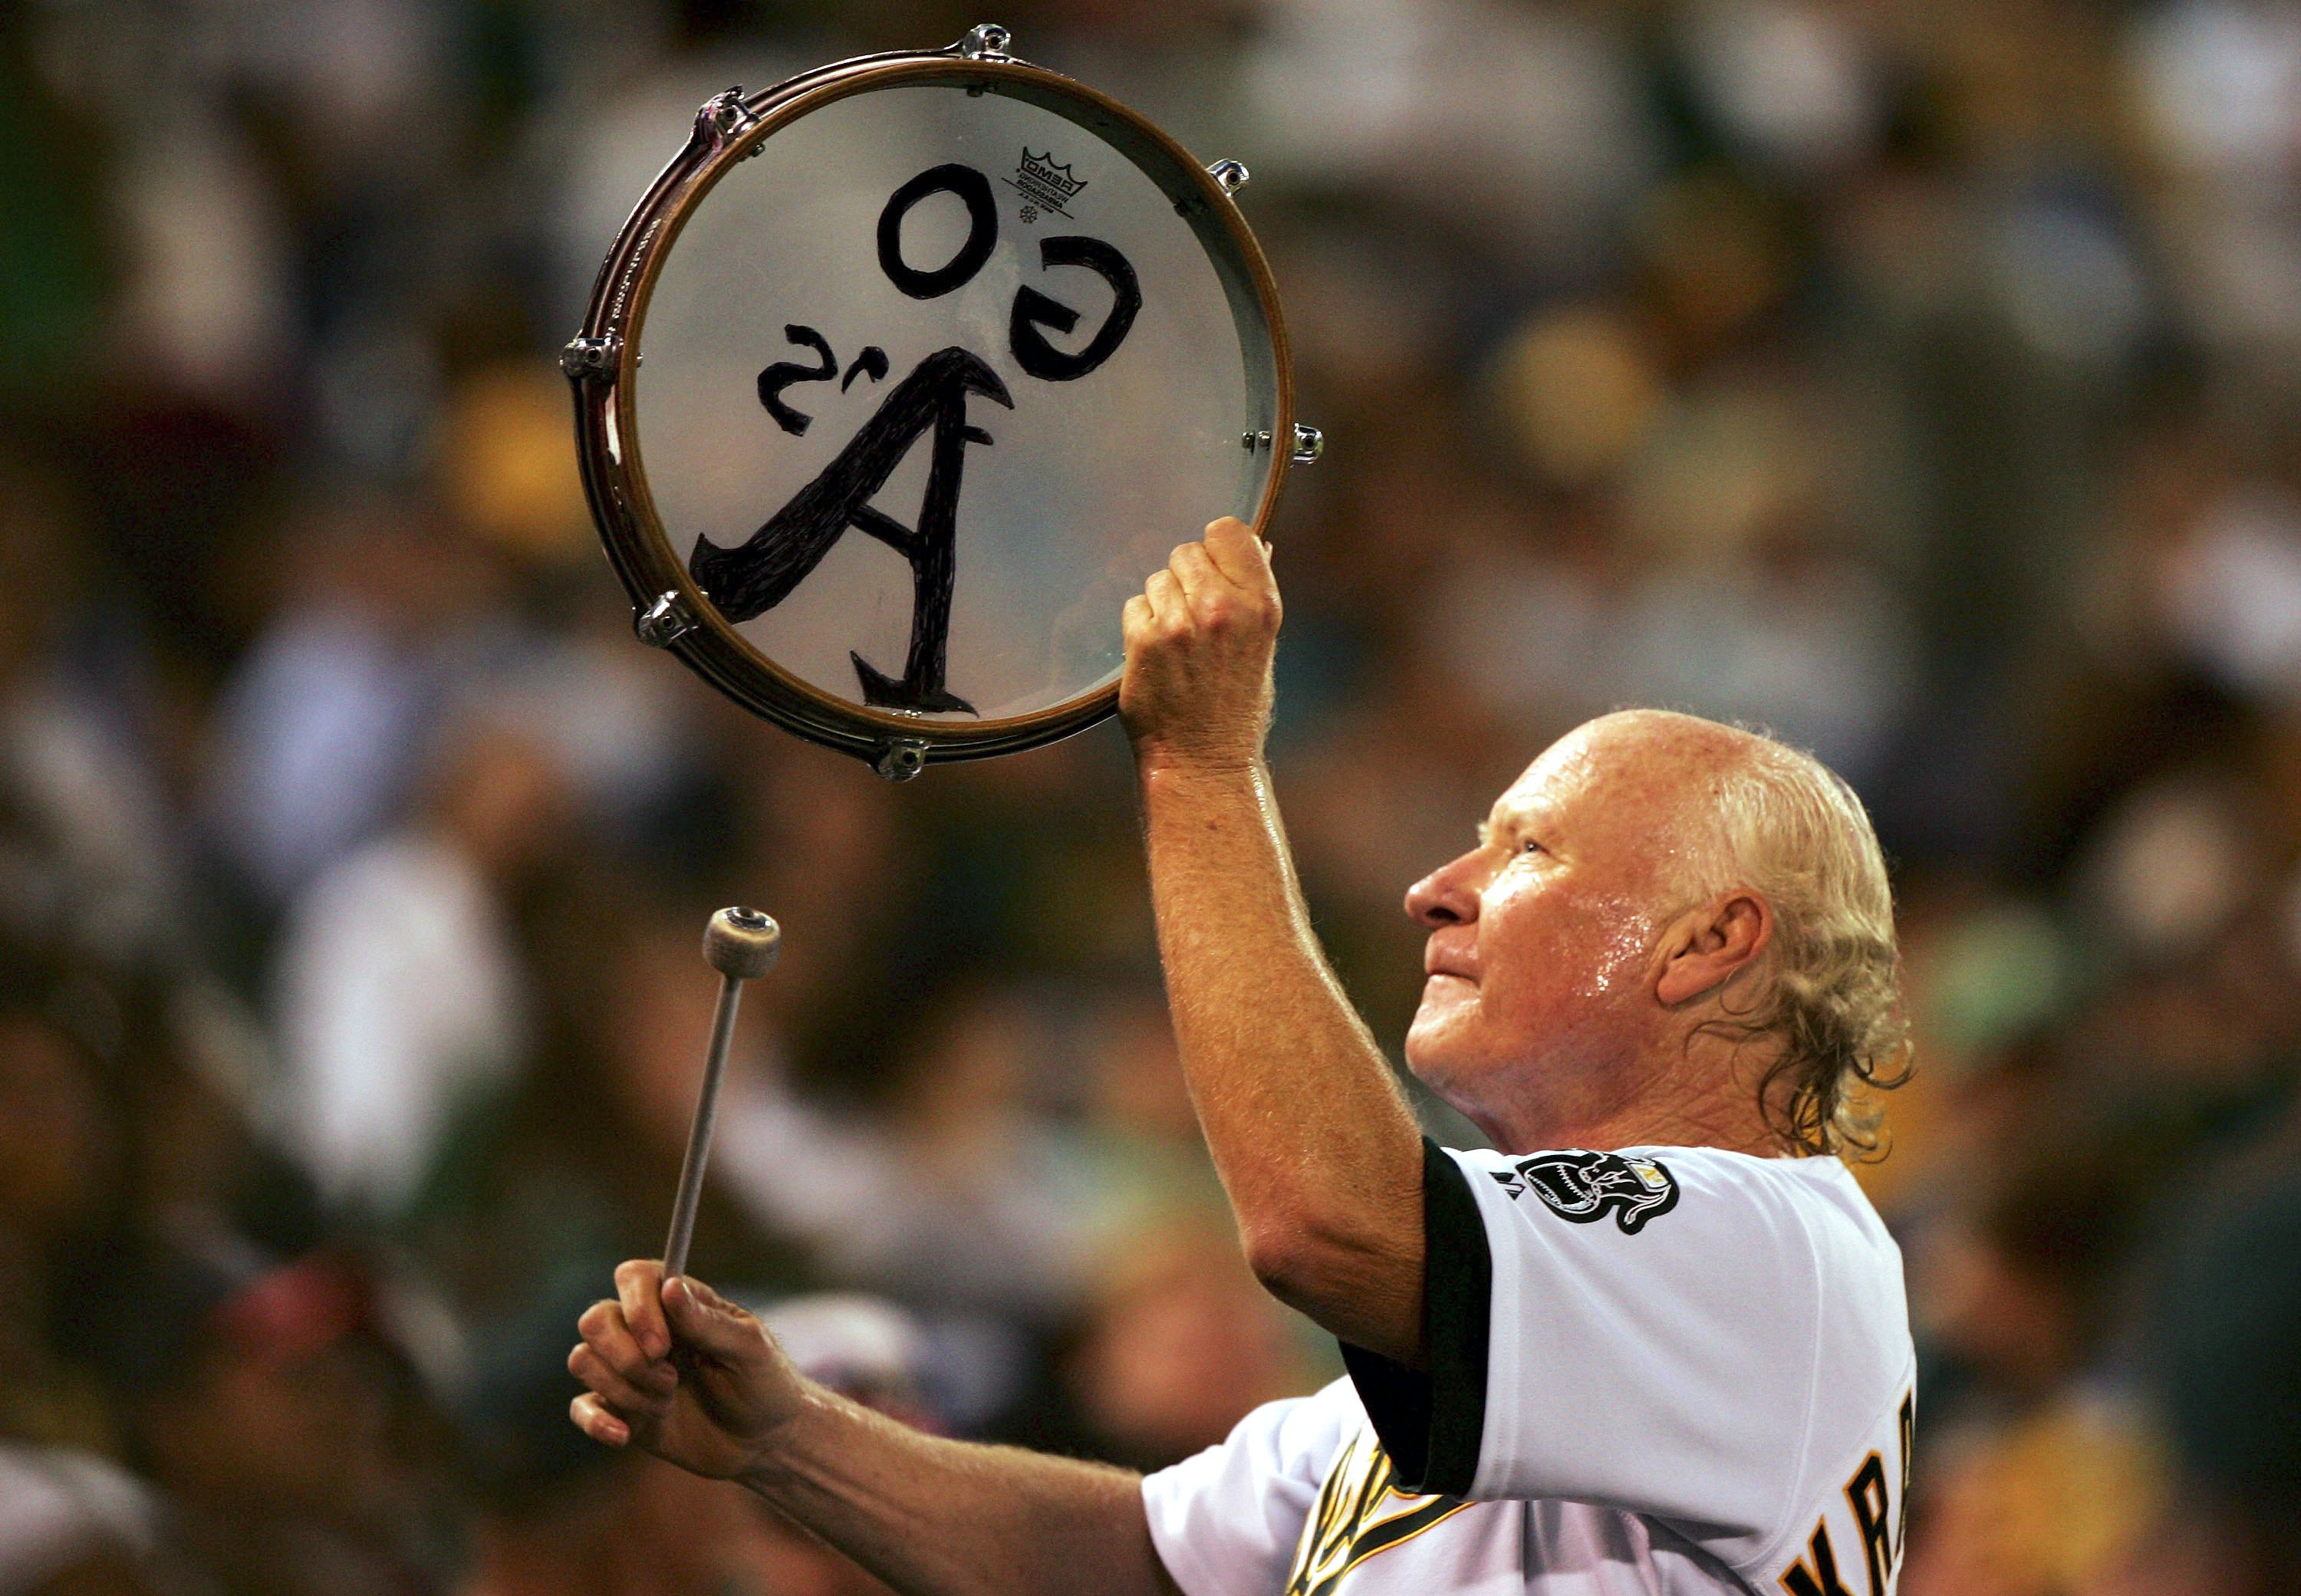 OAKLAND, CA - SEPTEMBER 22:  A's fan 'Krazy' George Henderson cheers during the Los Angeles Angels of Anaheim and Oakland Athletics MLB game at McAfee Coliseum on September 22, 2006 in Oakland, California.  (Photo by Jed Jacobsohn/Getty Images)